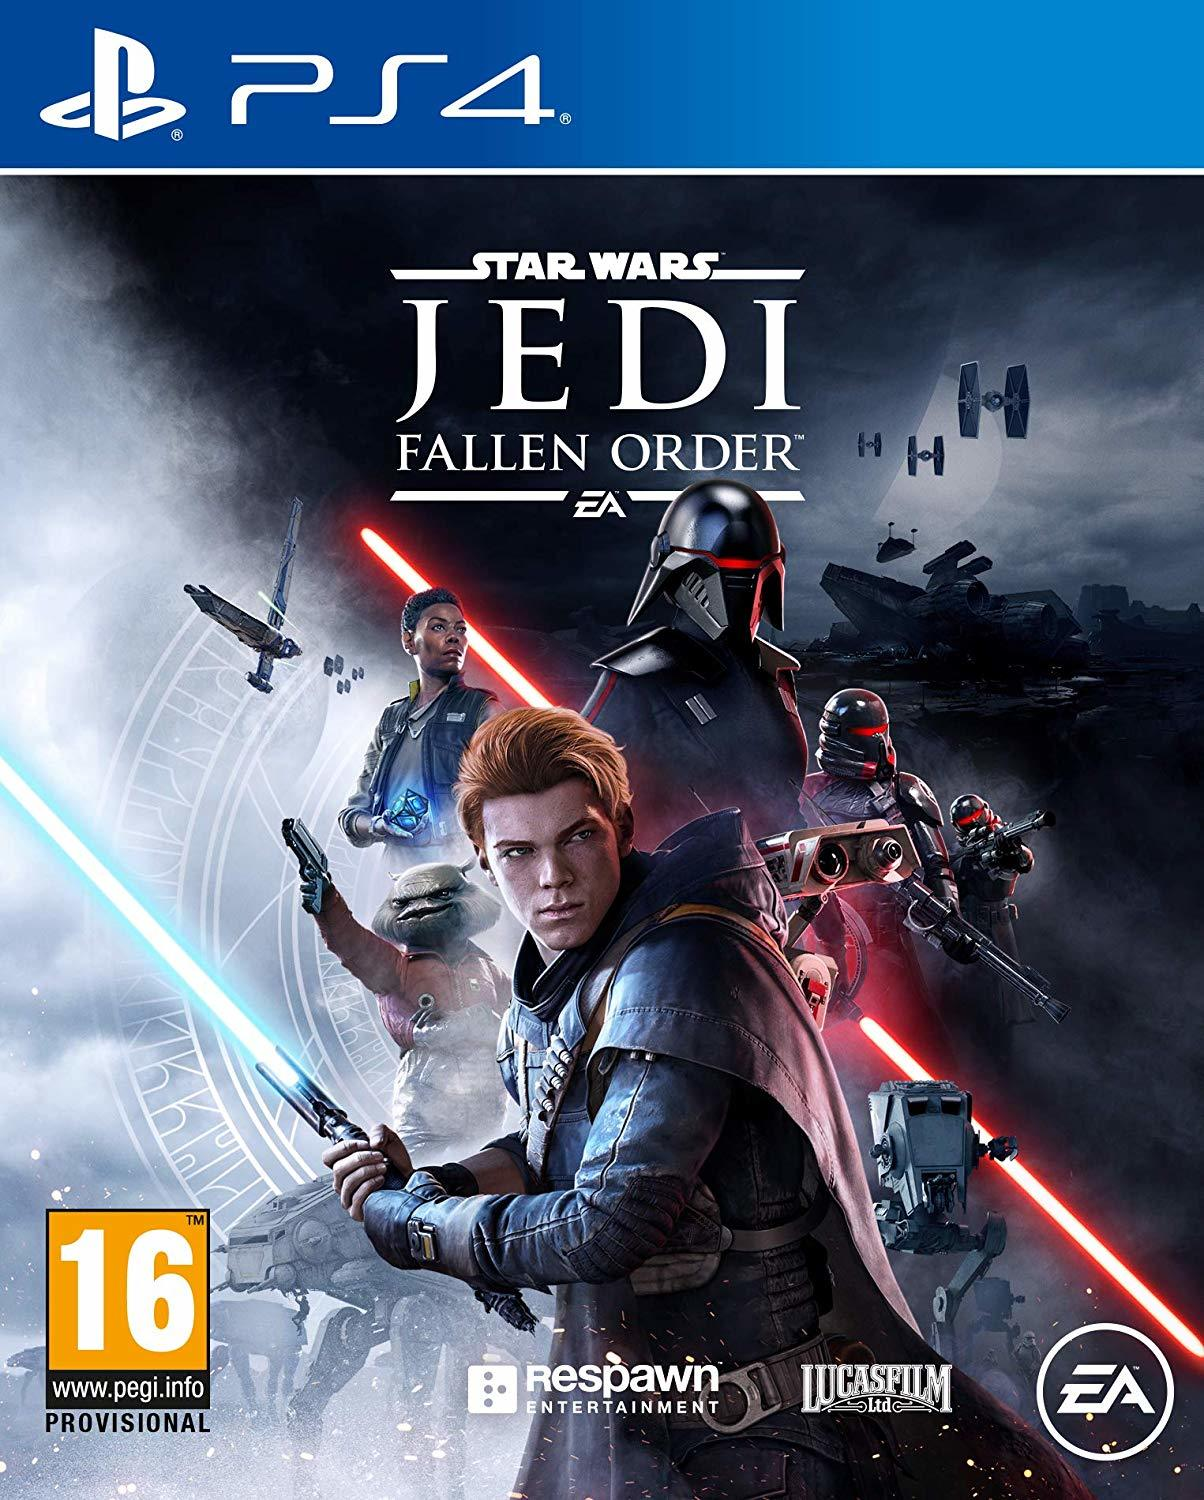 Star Wars Jedi: Fallen Order for PS4 image